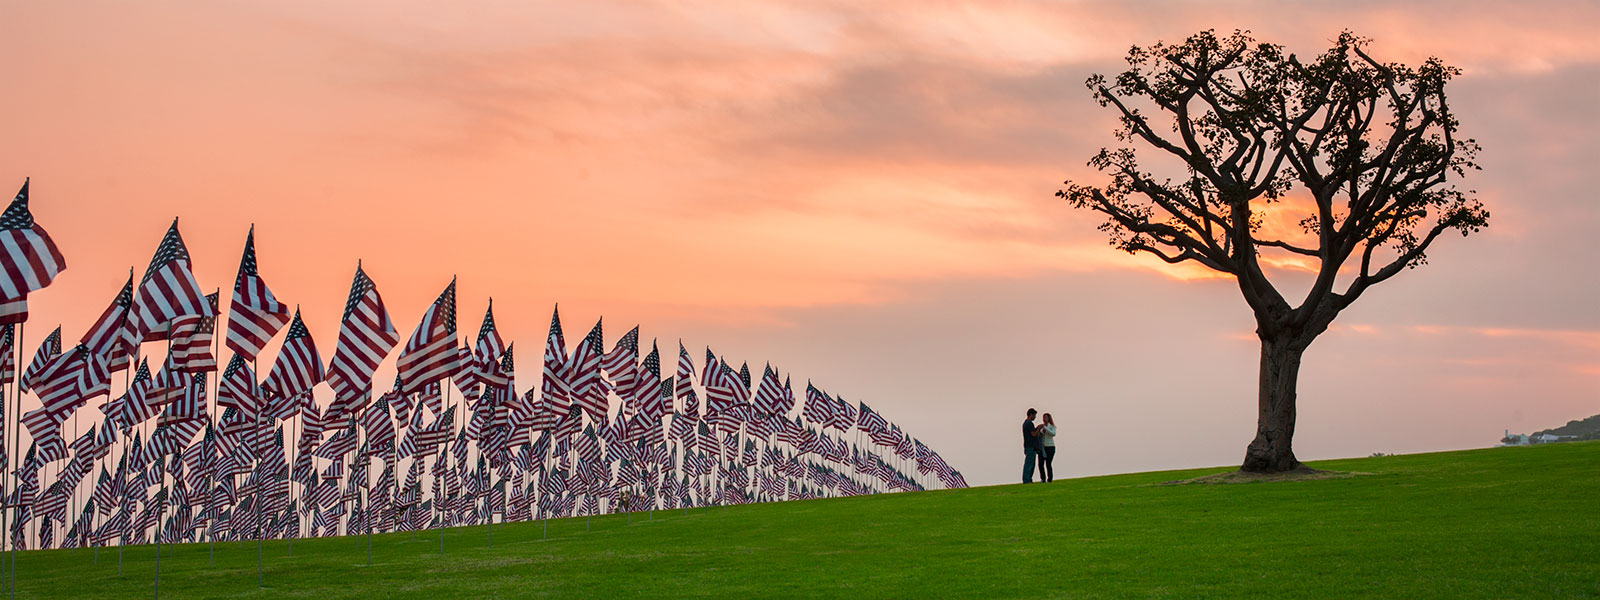 9/11 Memorial at Pepperdine University